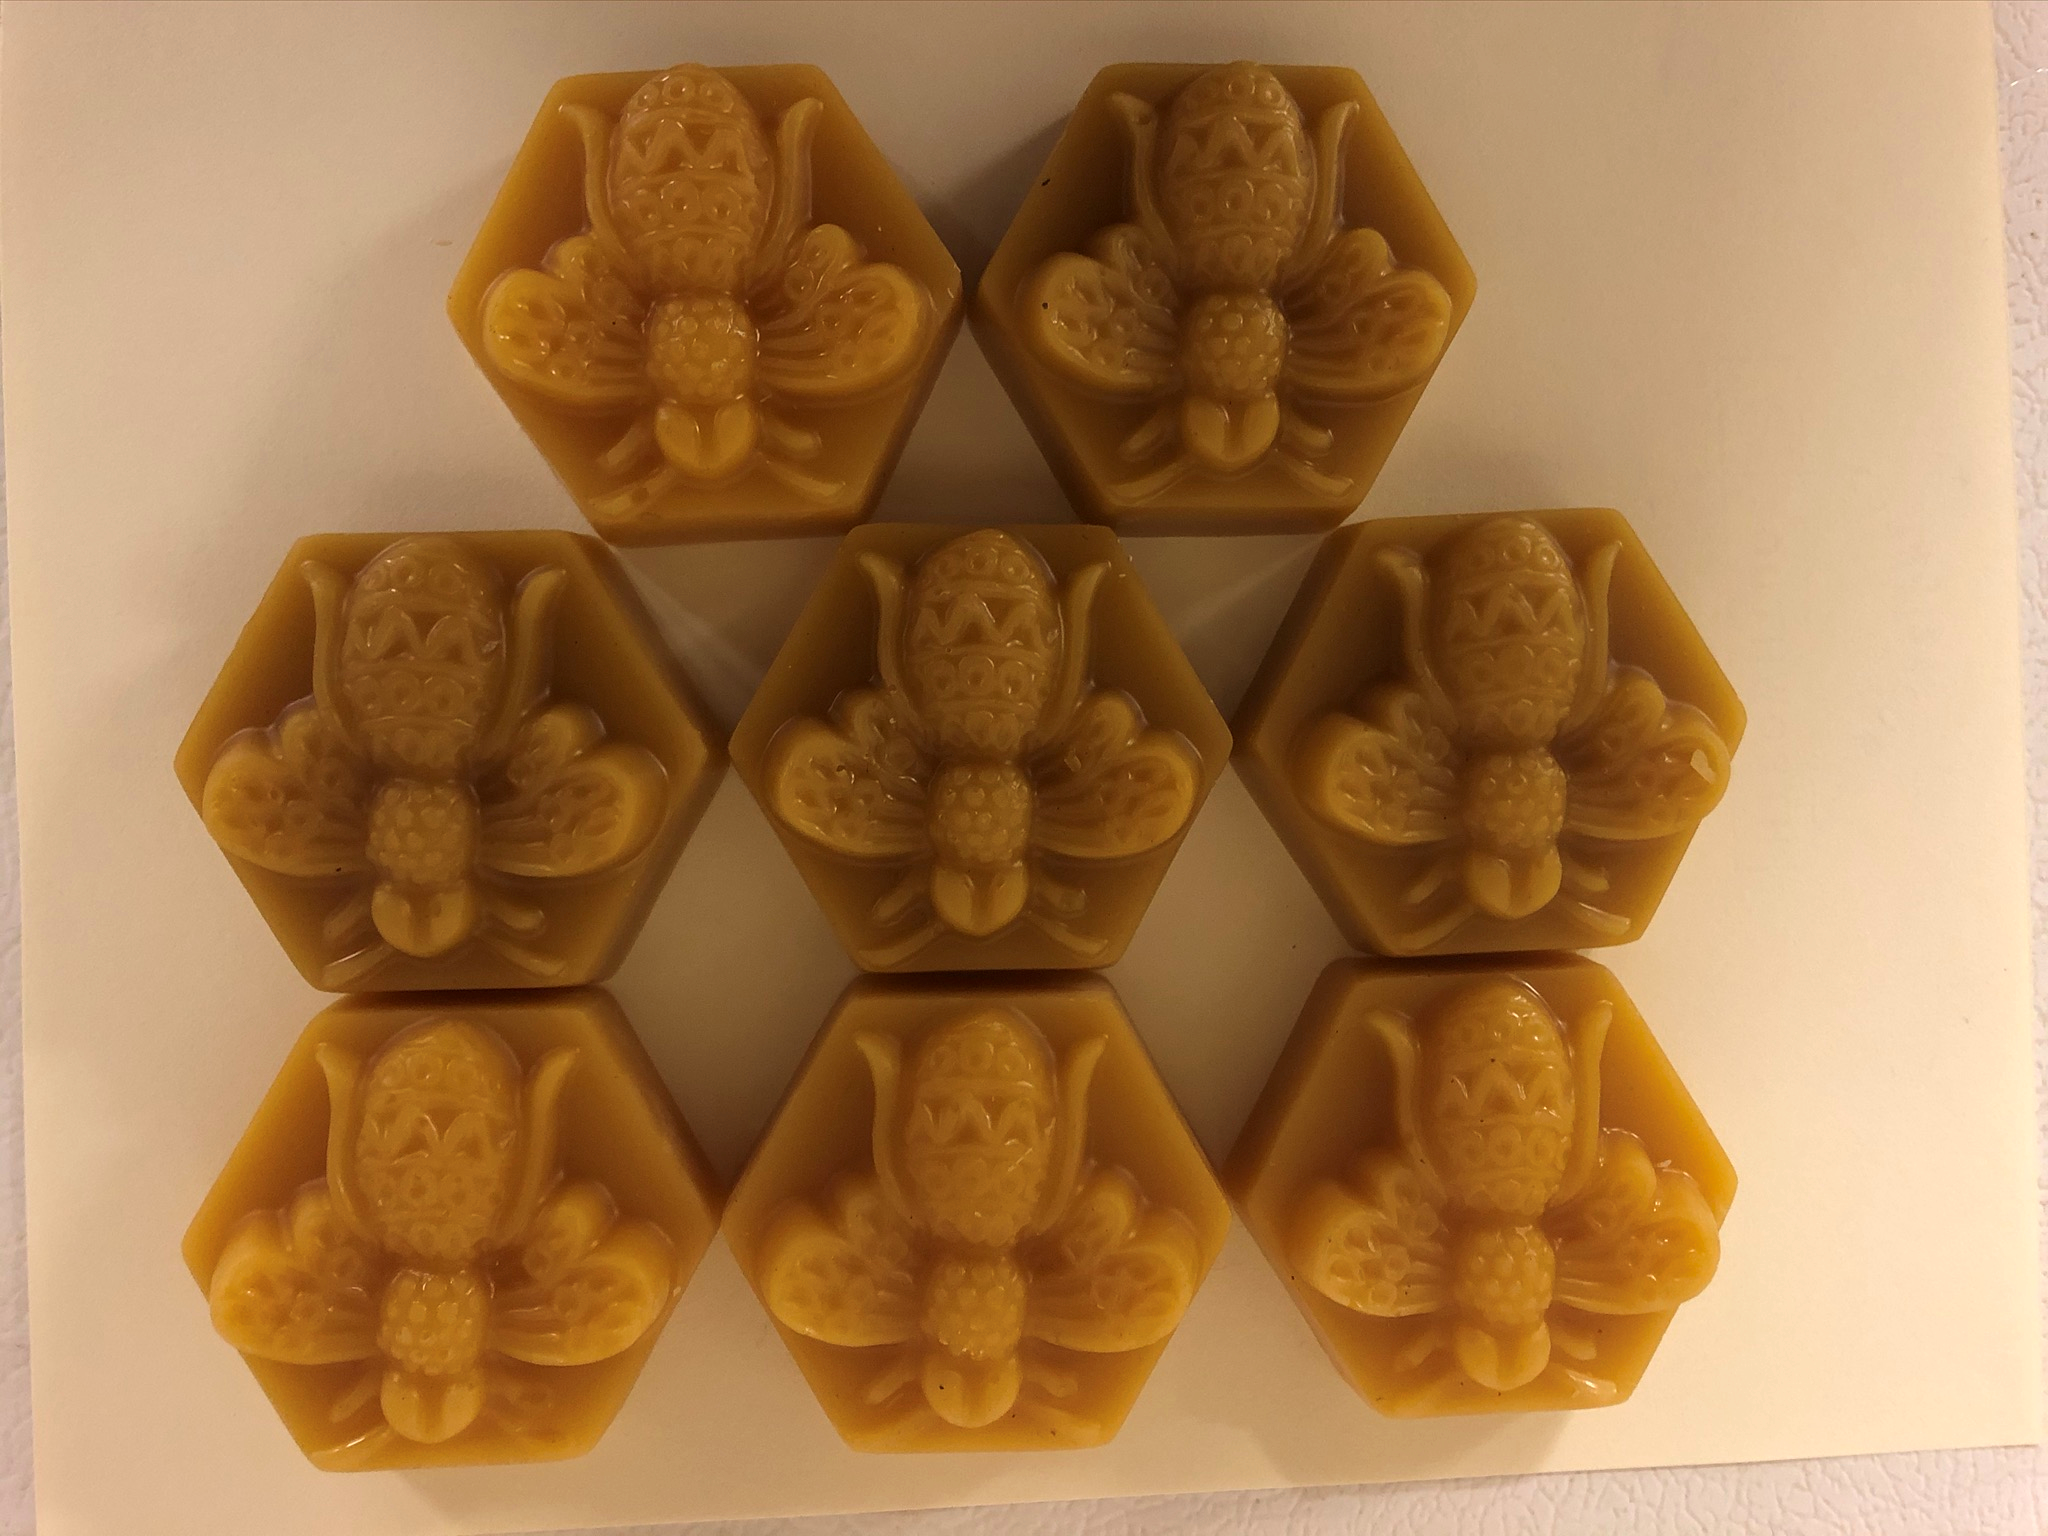 Bees Wax – Mail Order